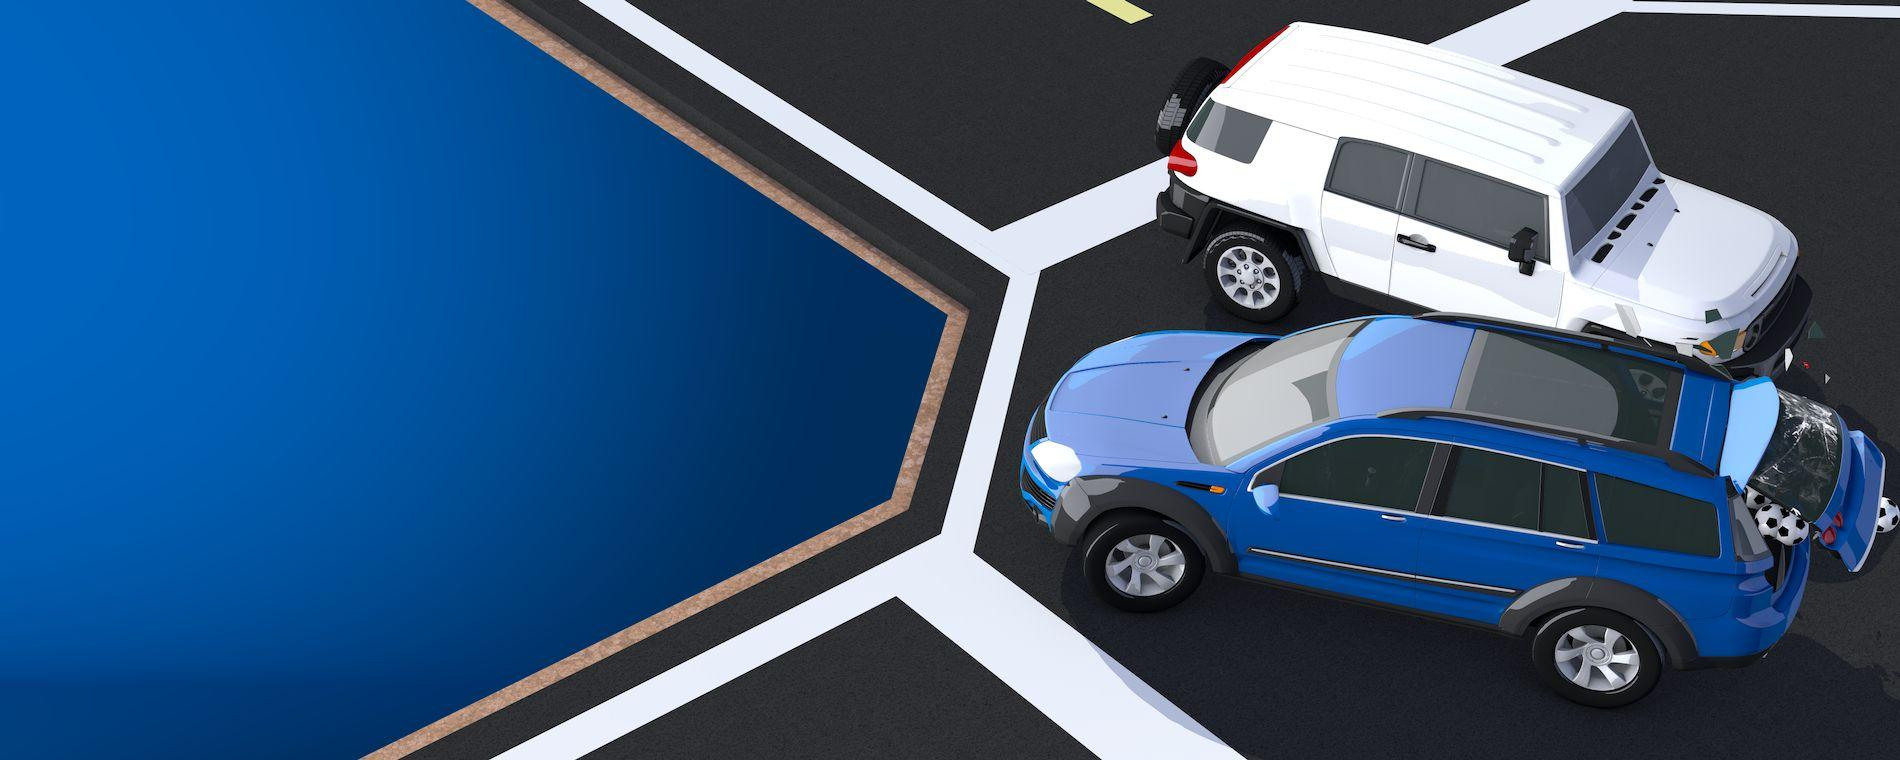 Illustration of a blue car and a white car